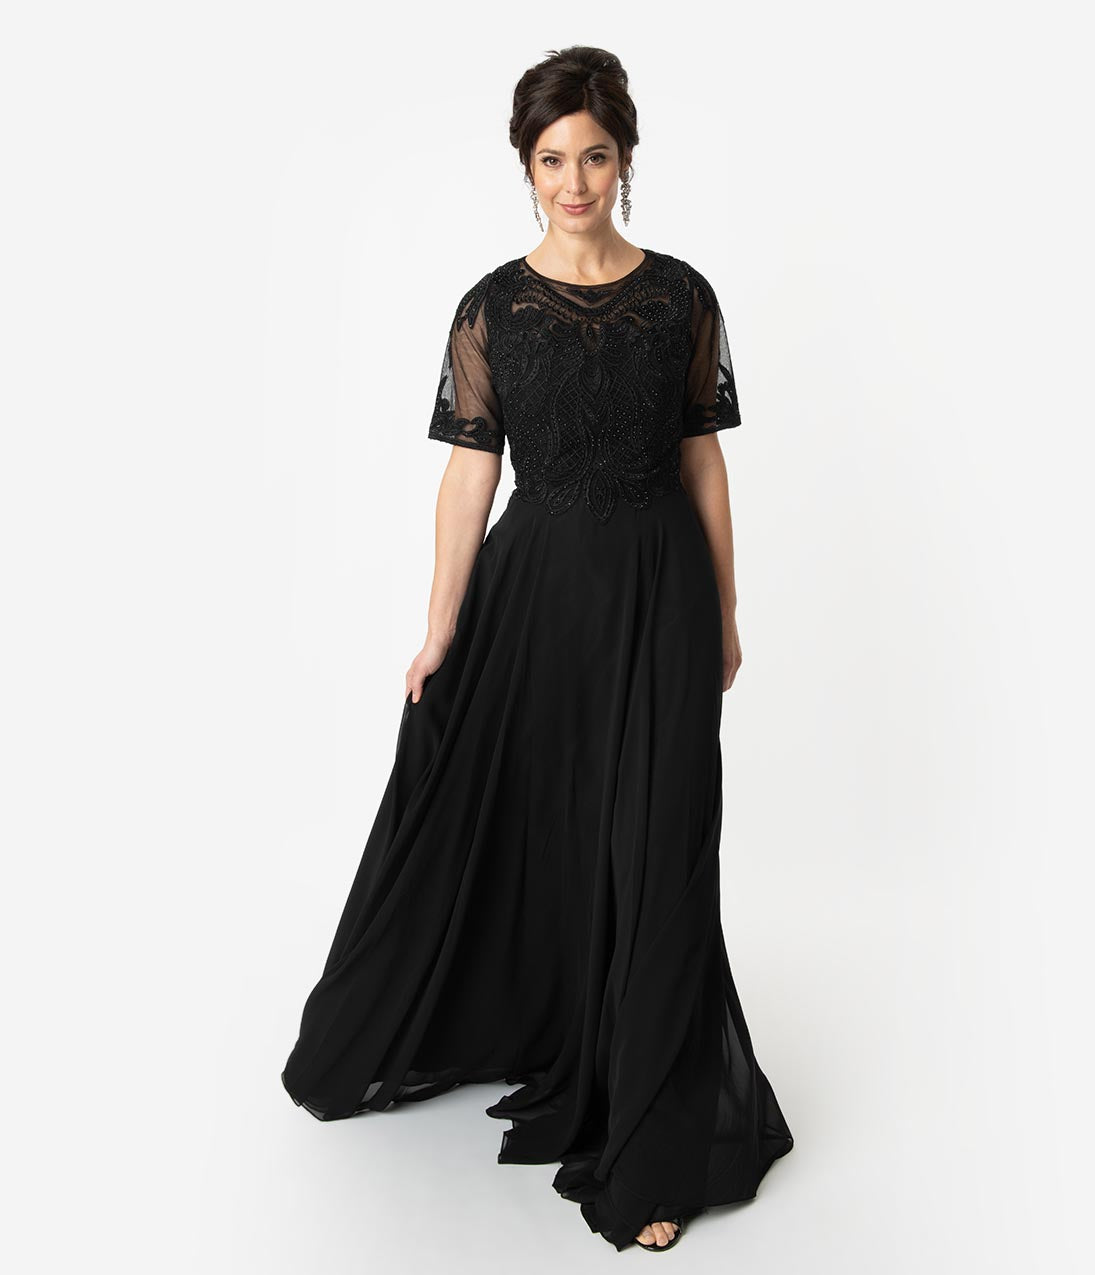 1900 Edwardian Dresses, Tea Party Dresses, White Lace Dresses Black Chiffon Embellished Short Sleeve Modest Long Dress $168.00 AT vintagedancer.com